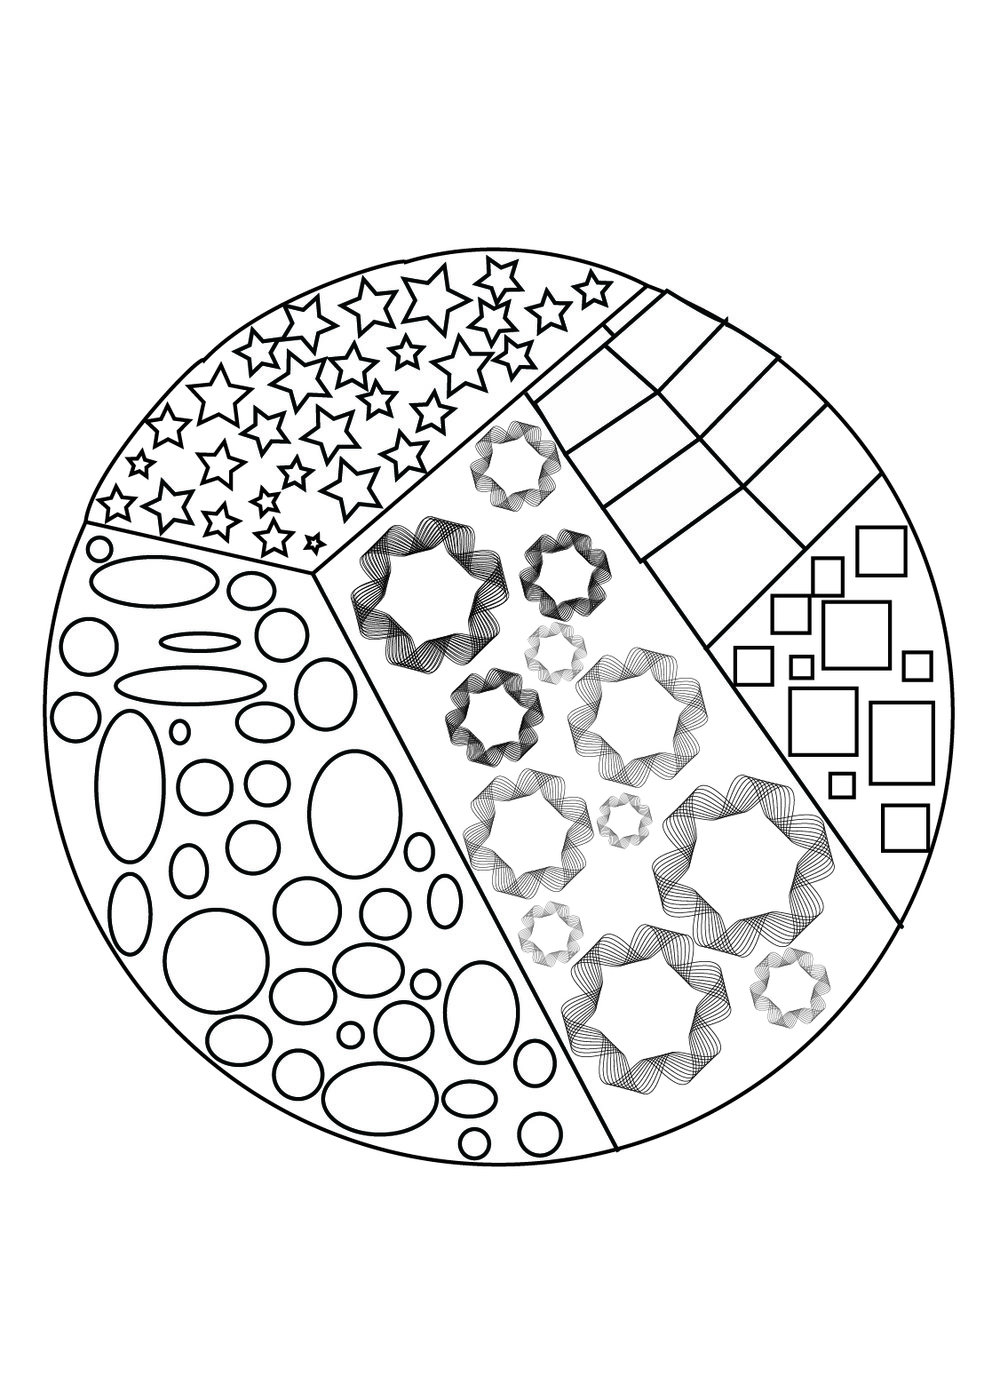 coloring page-01.jpg